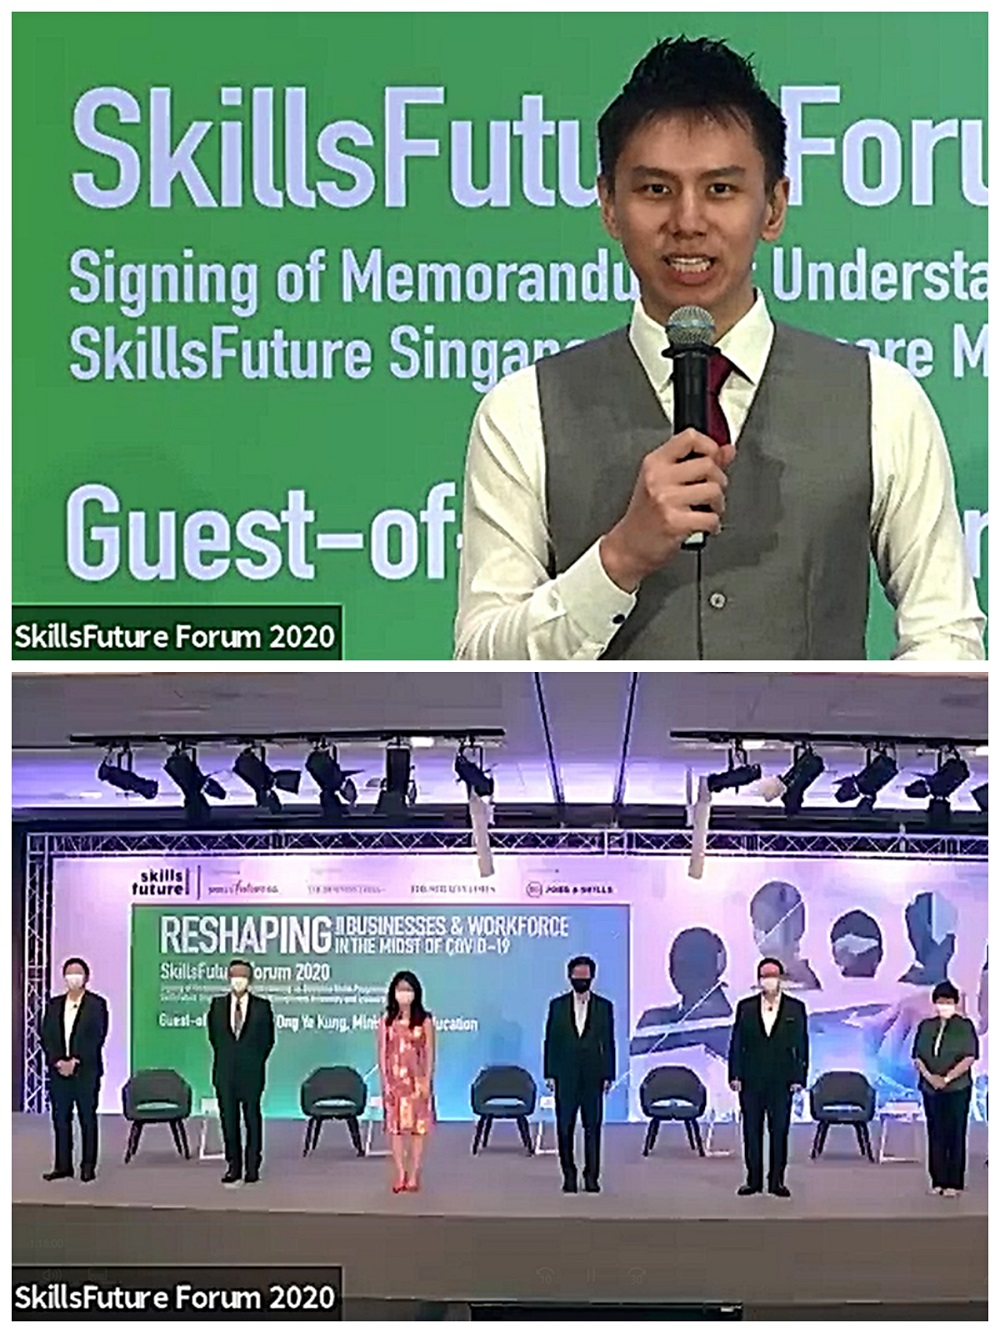 Skillsfuture Forum 2020 - Hybrid event (online virtual event and live event) - Emcee Lester